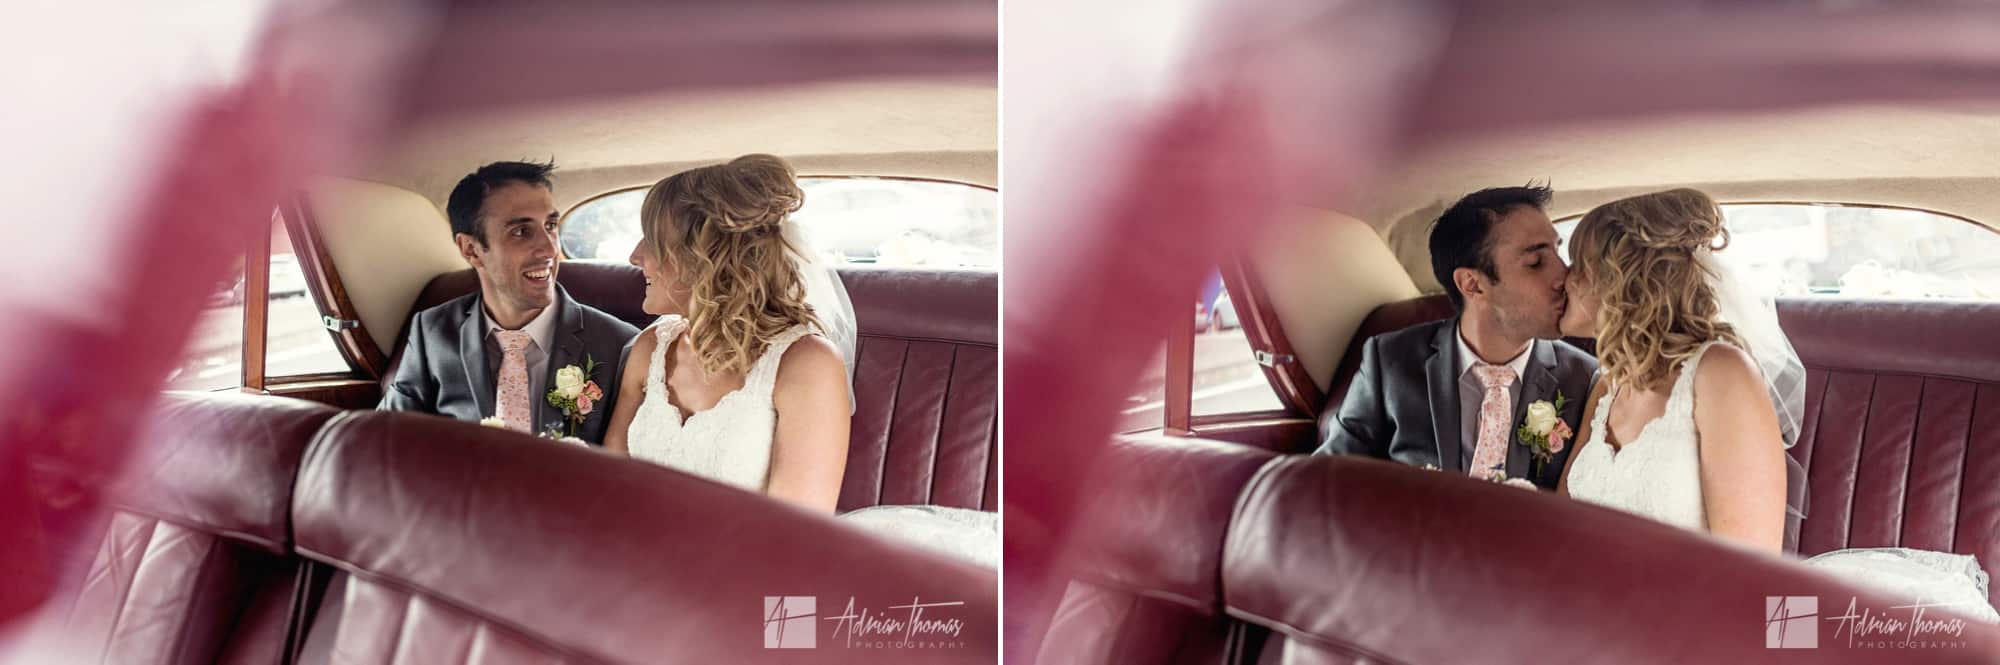 Bride and groom in wedding car.